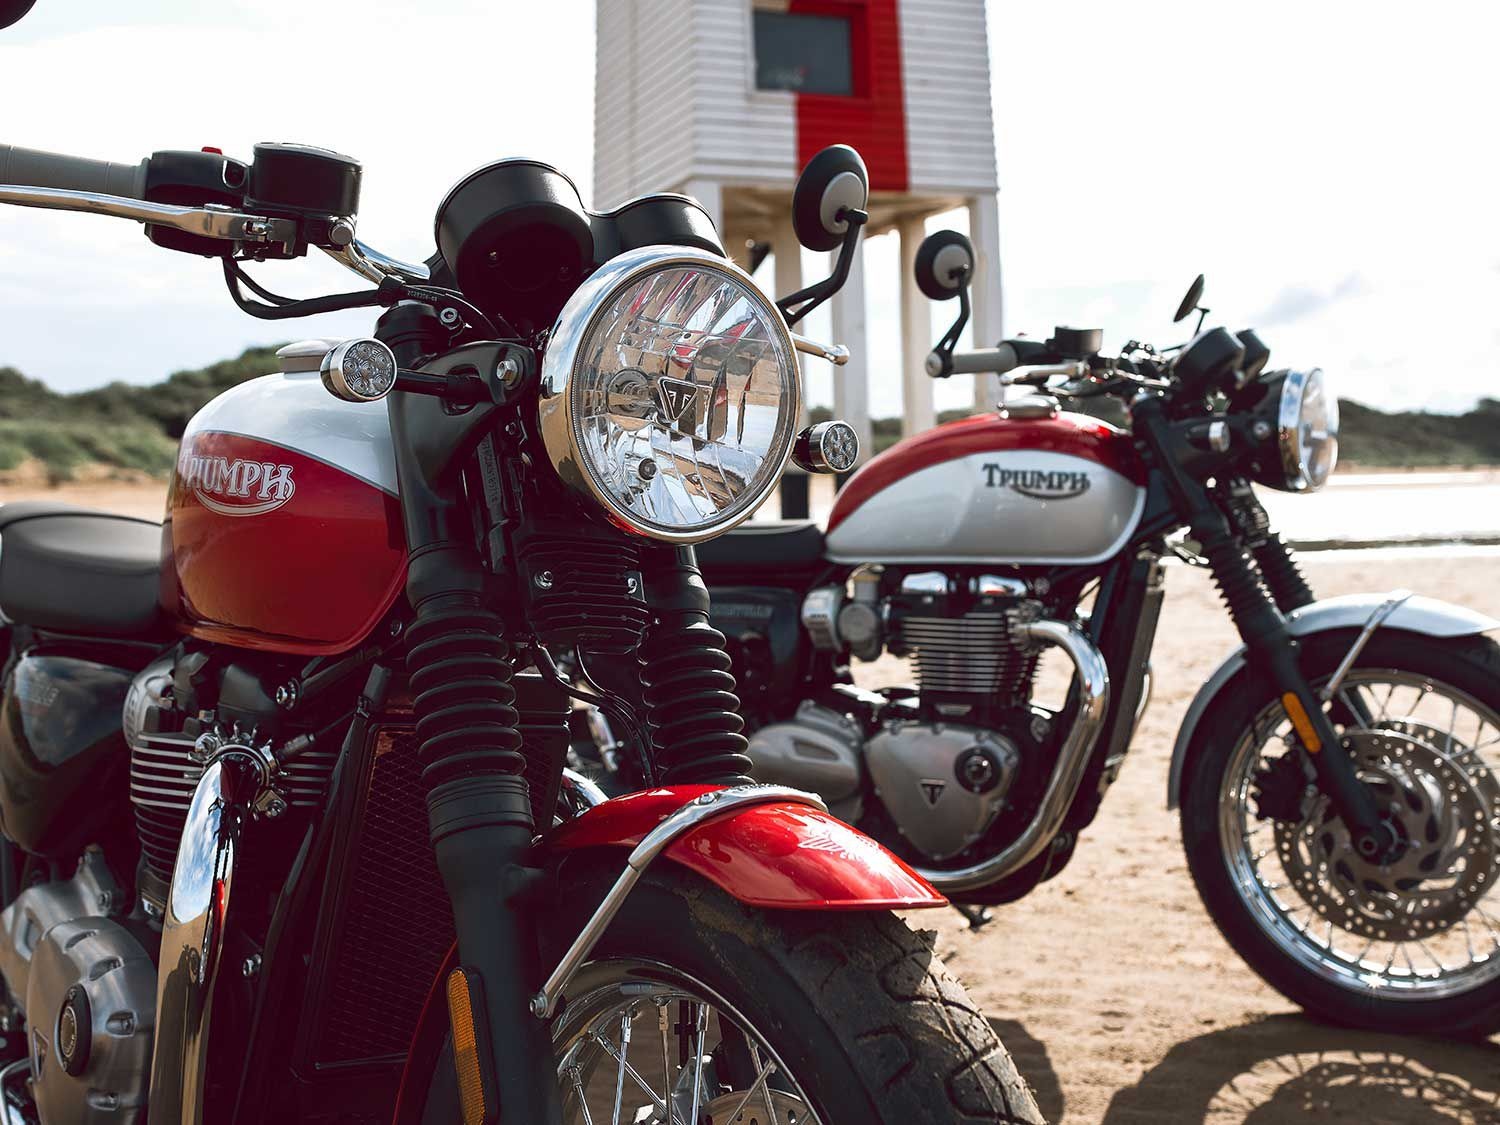 <h2>2020 Triumph Bonneville T120 and T100 Bud Ekins Special Editions</h2> </br> Motocross and desert racer/Hollywood stuntman Bud Ekins is celebrated on the 2020 Triumph Bonneville T120 and T100 Bud Ekins special editions.